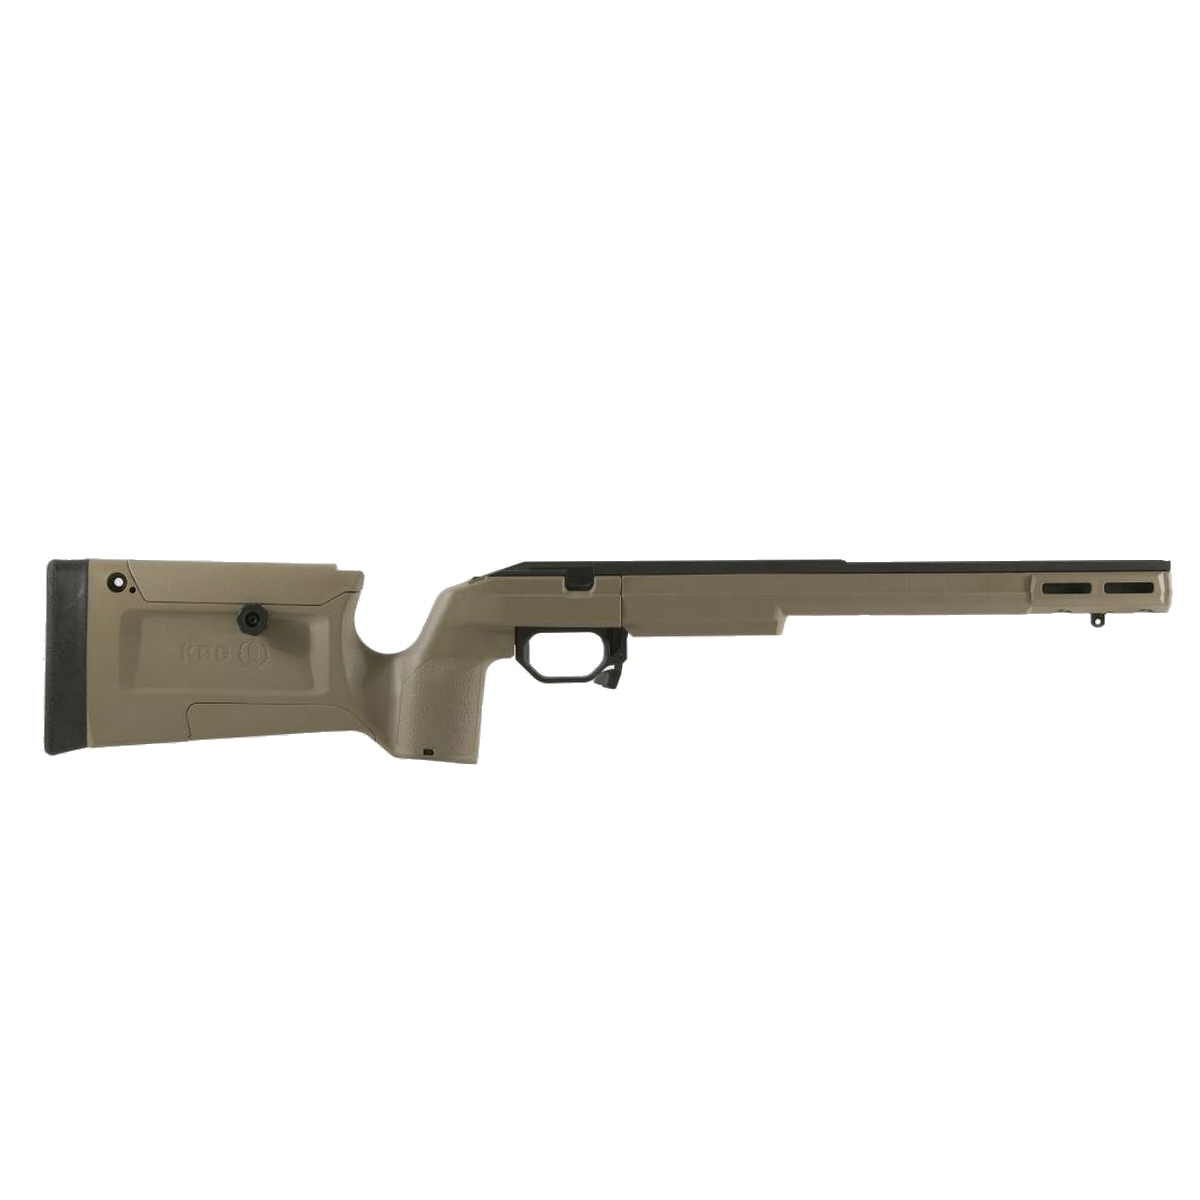 KRG Bravo Rifle Chassis Howa Short Action FDE